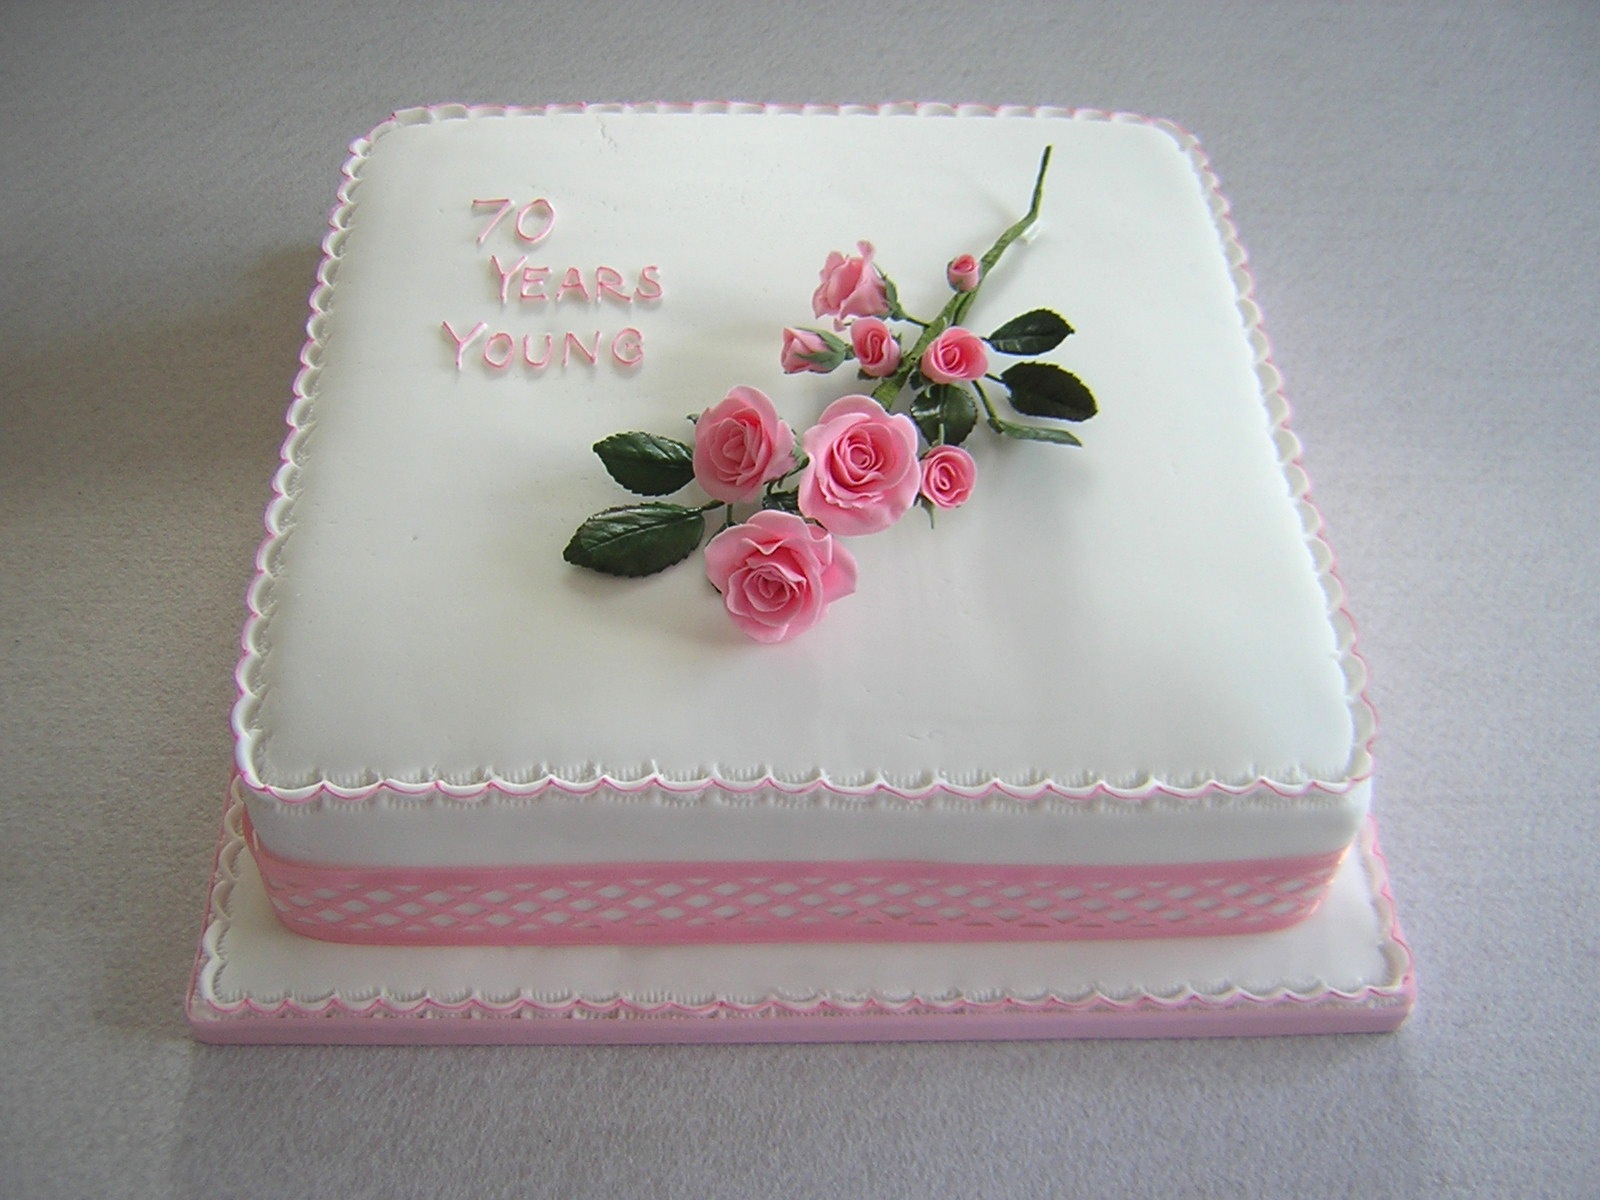 Get Free High Quality HD Wallpapers Birthday Cake Ideas For 70 Year Old Woman